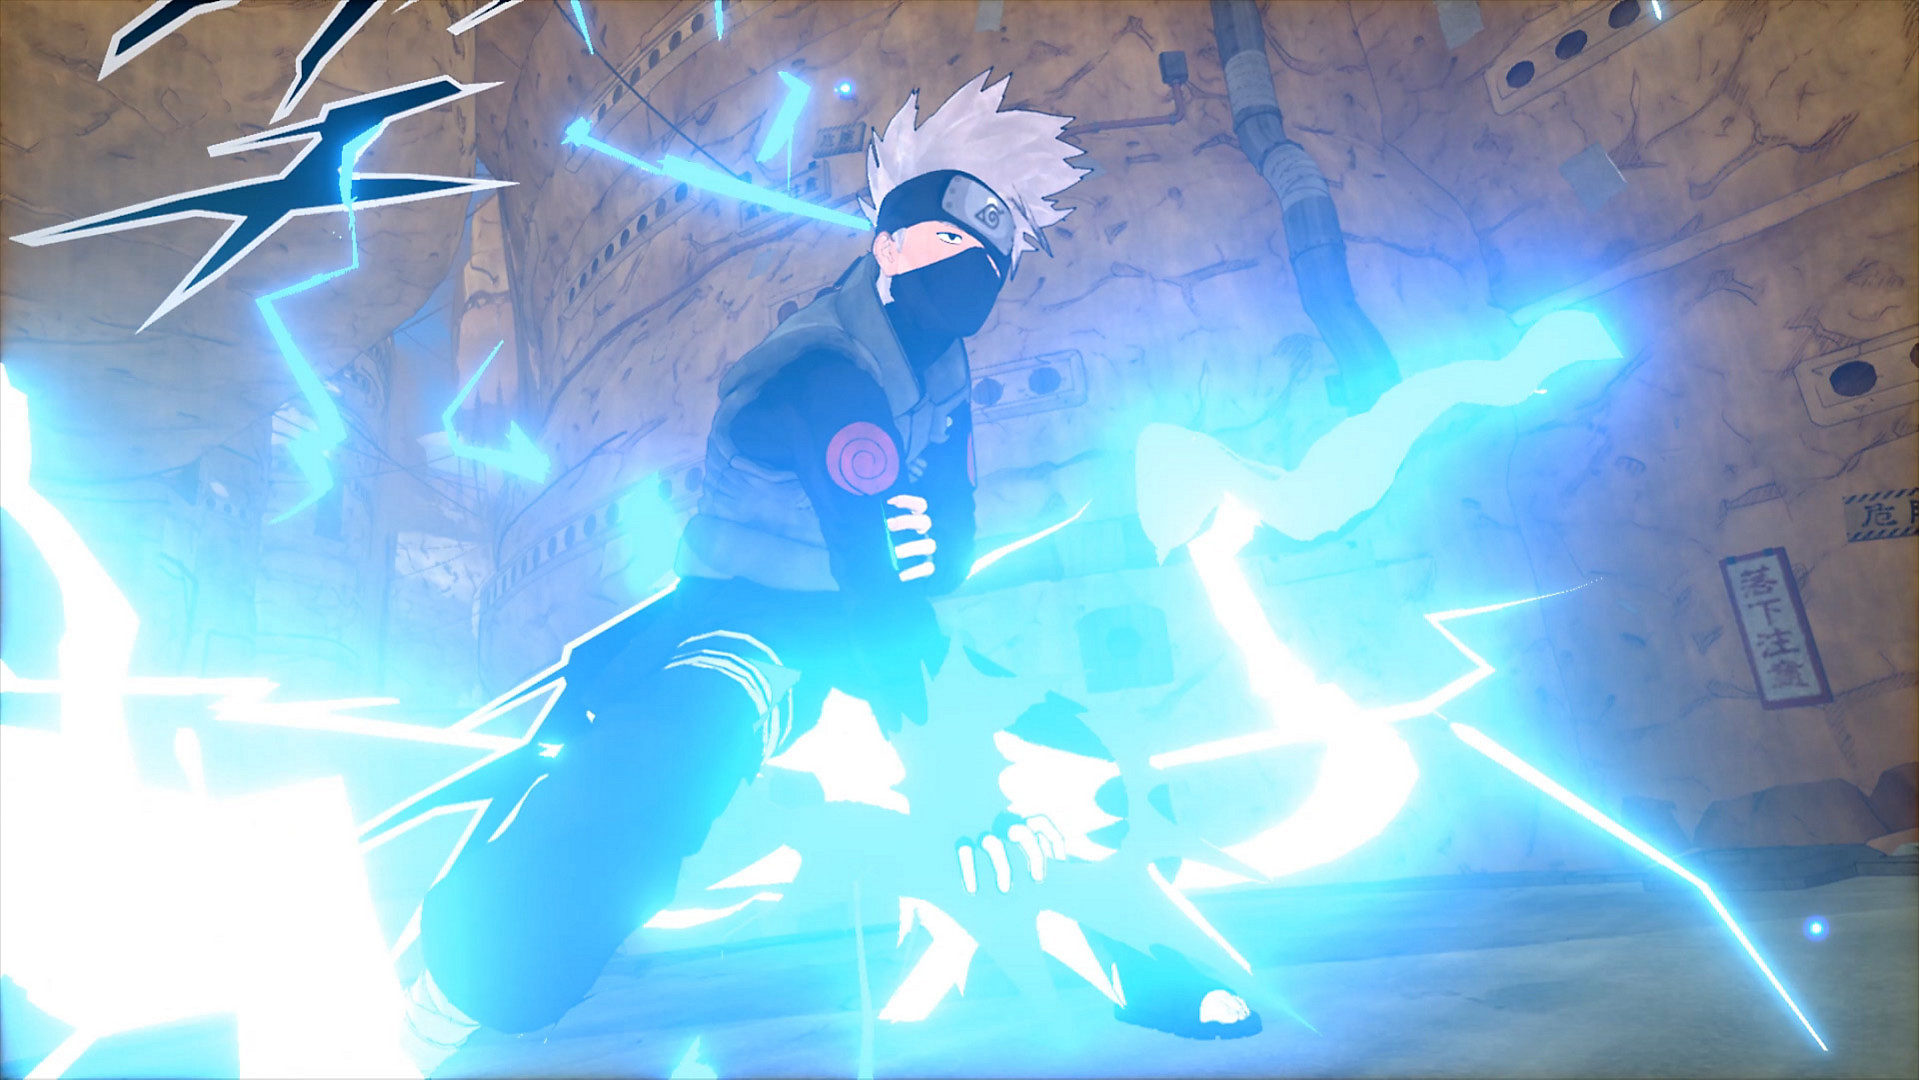 naruto-to-boruto-shinobi-striker-screens